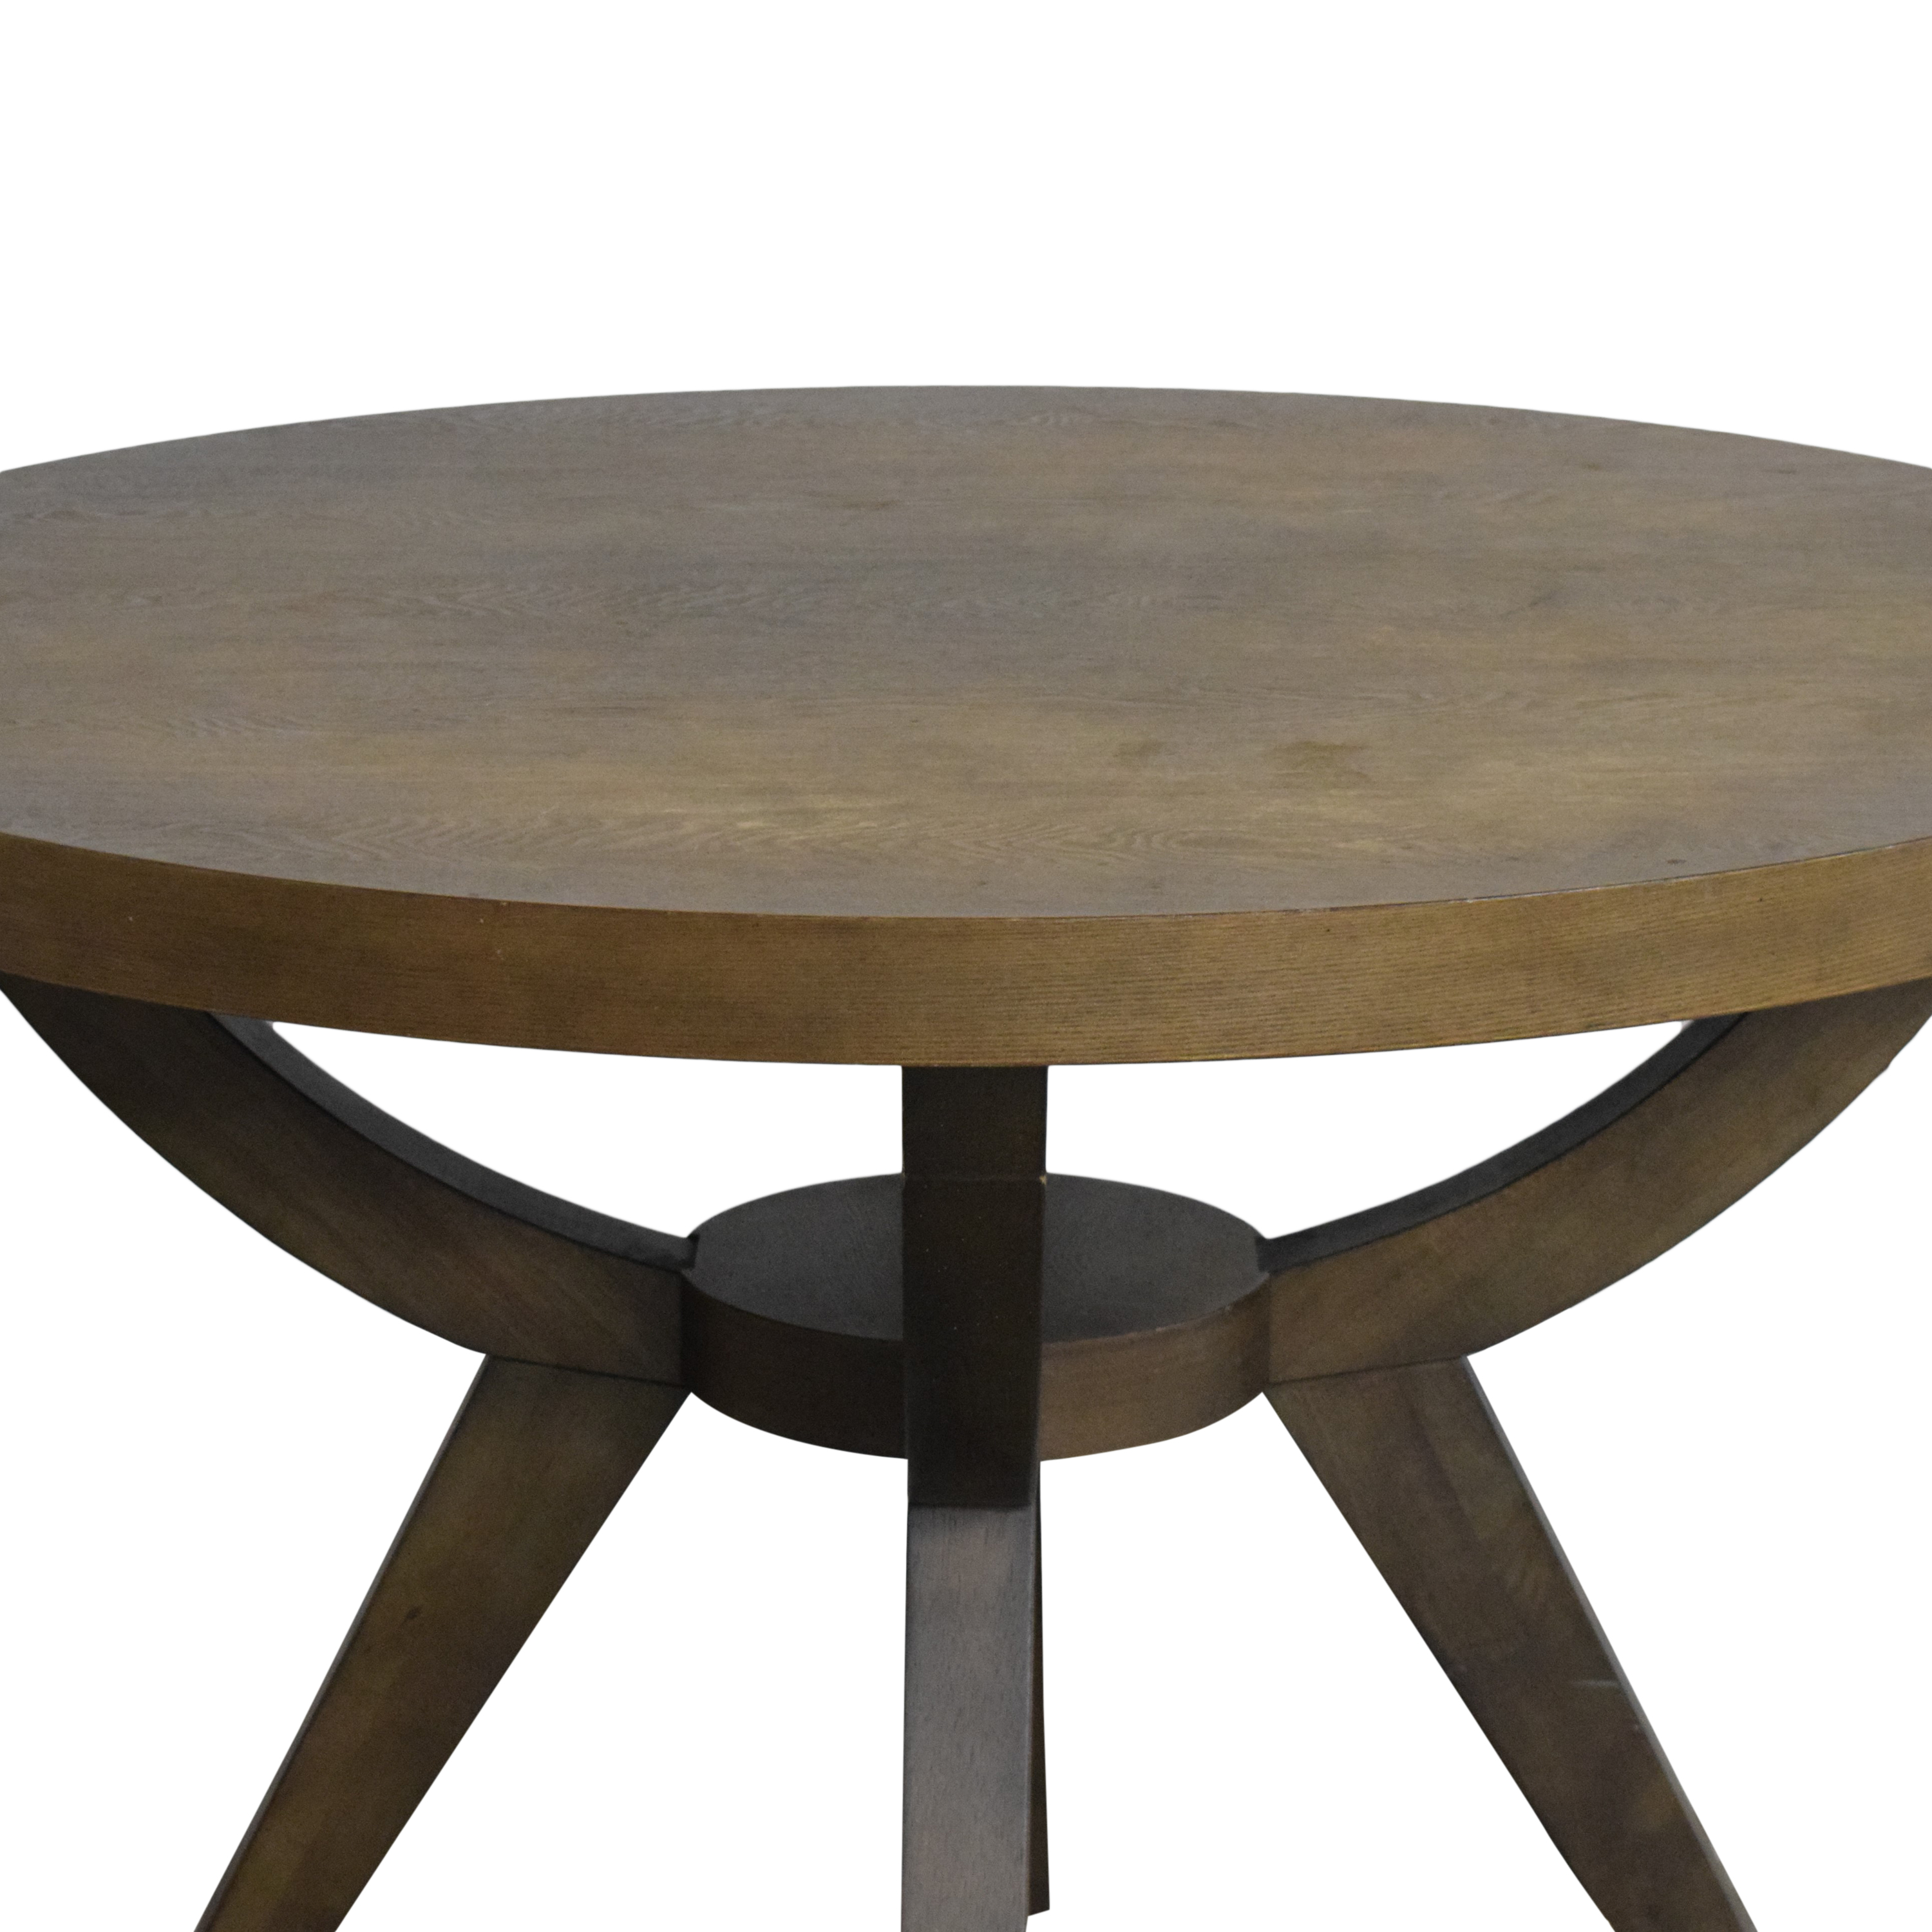 West Elm West Elm Arc Base Pedestal Dining Table on sale